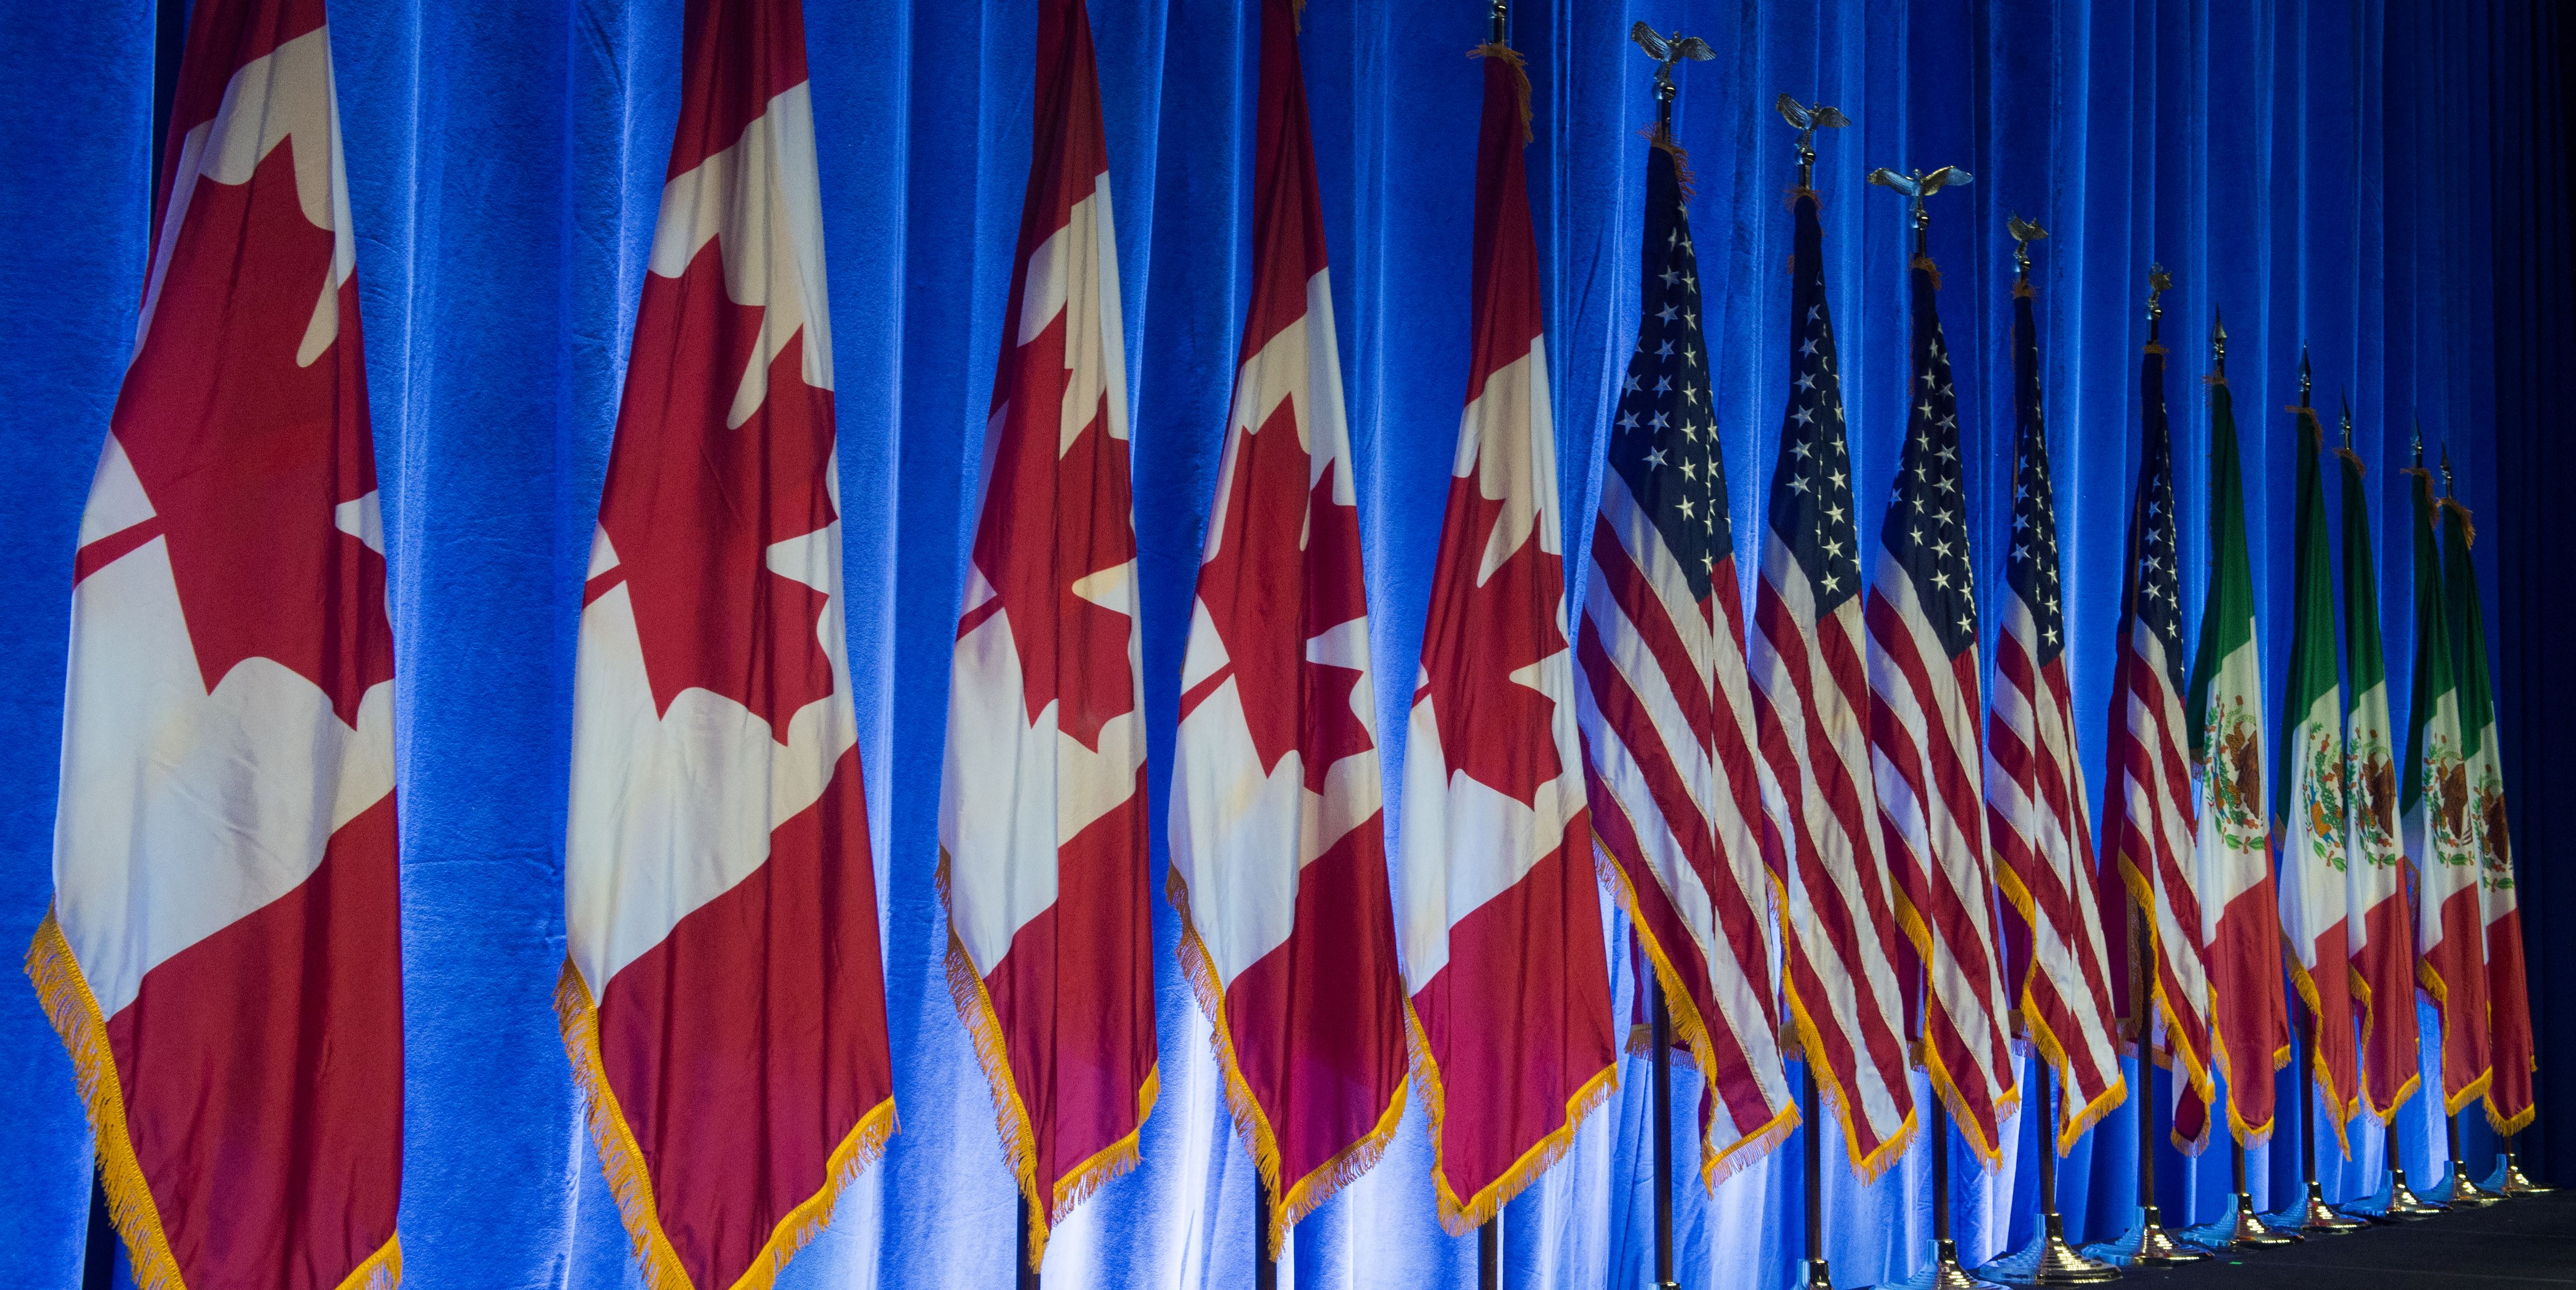 The flags of Canada, the United States, and Mexico, line the stage before the start of the negotiations for the modernization of NAFTA, August 16, 2016, in Washington, DC.